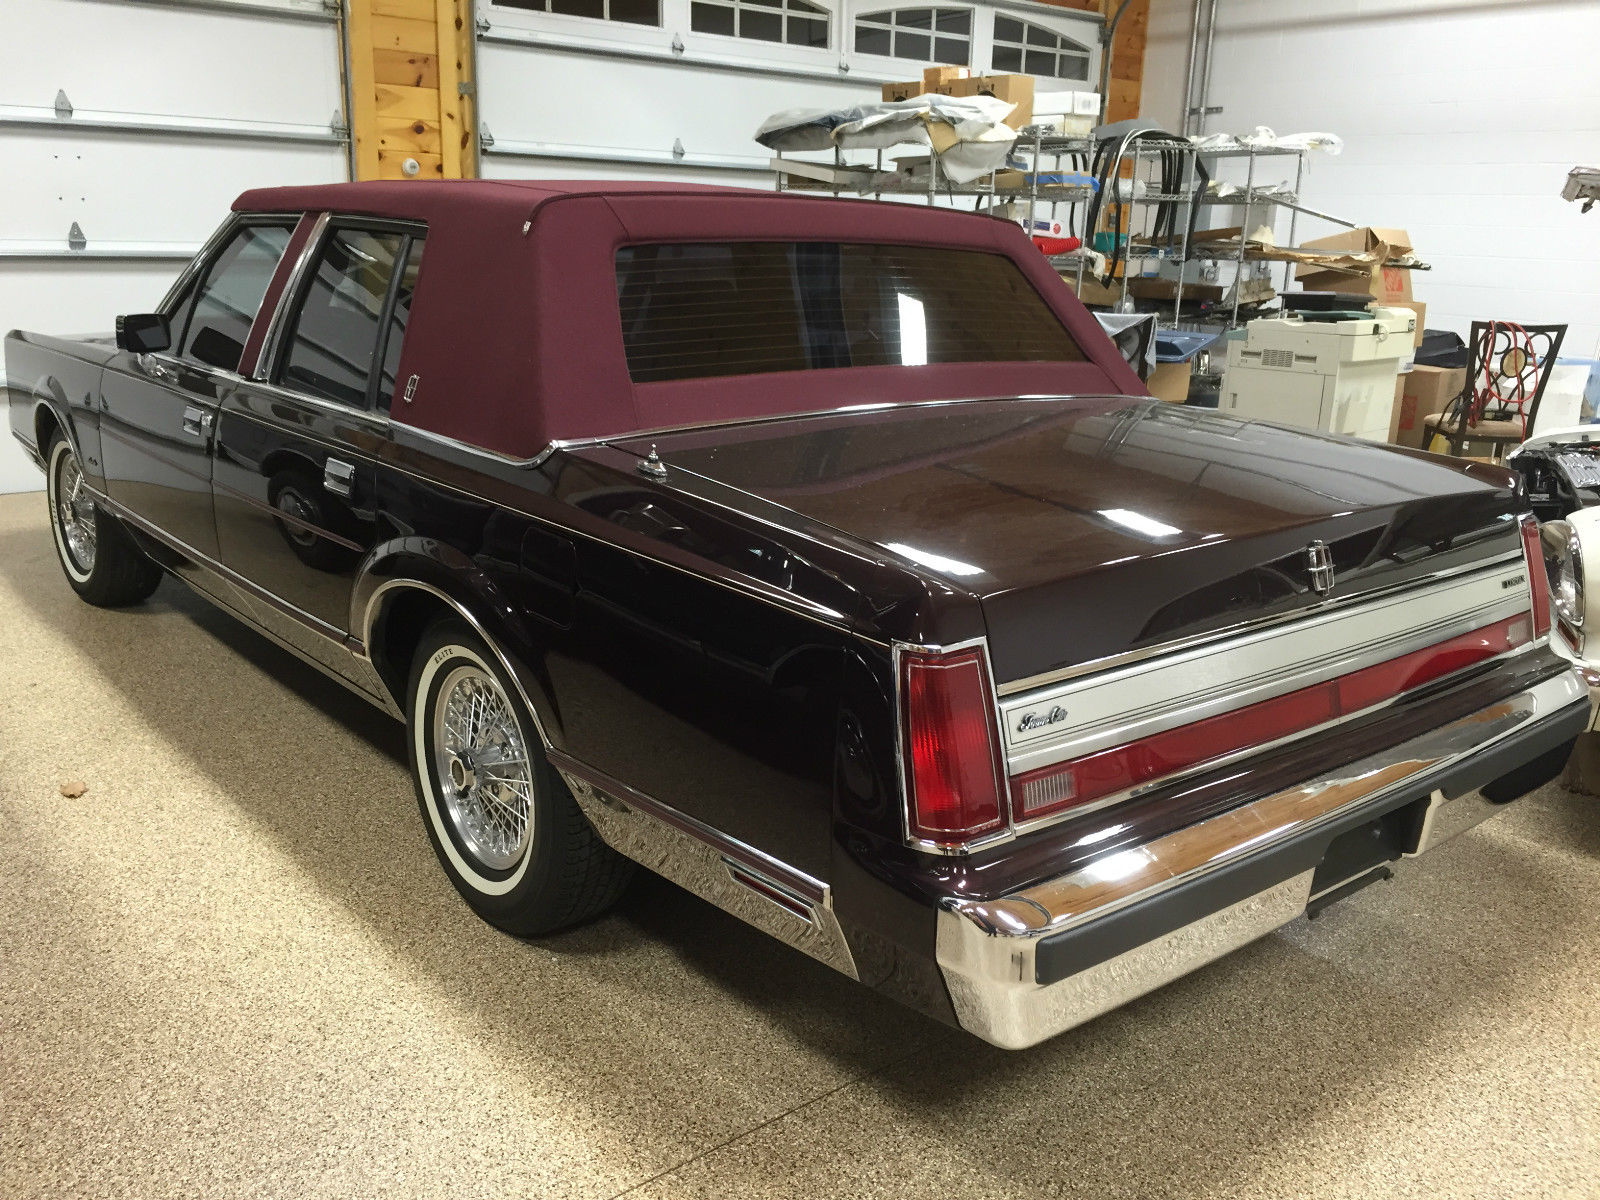 1988 lincoln town car for sale photos technical specifications description. Black Bedroom Furniture Sets. Home Design Ideas